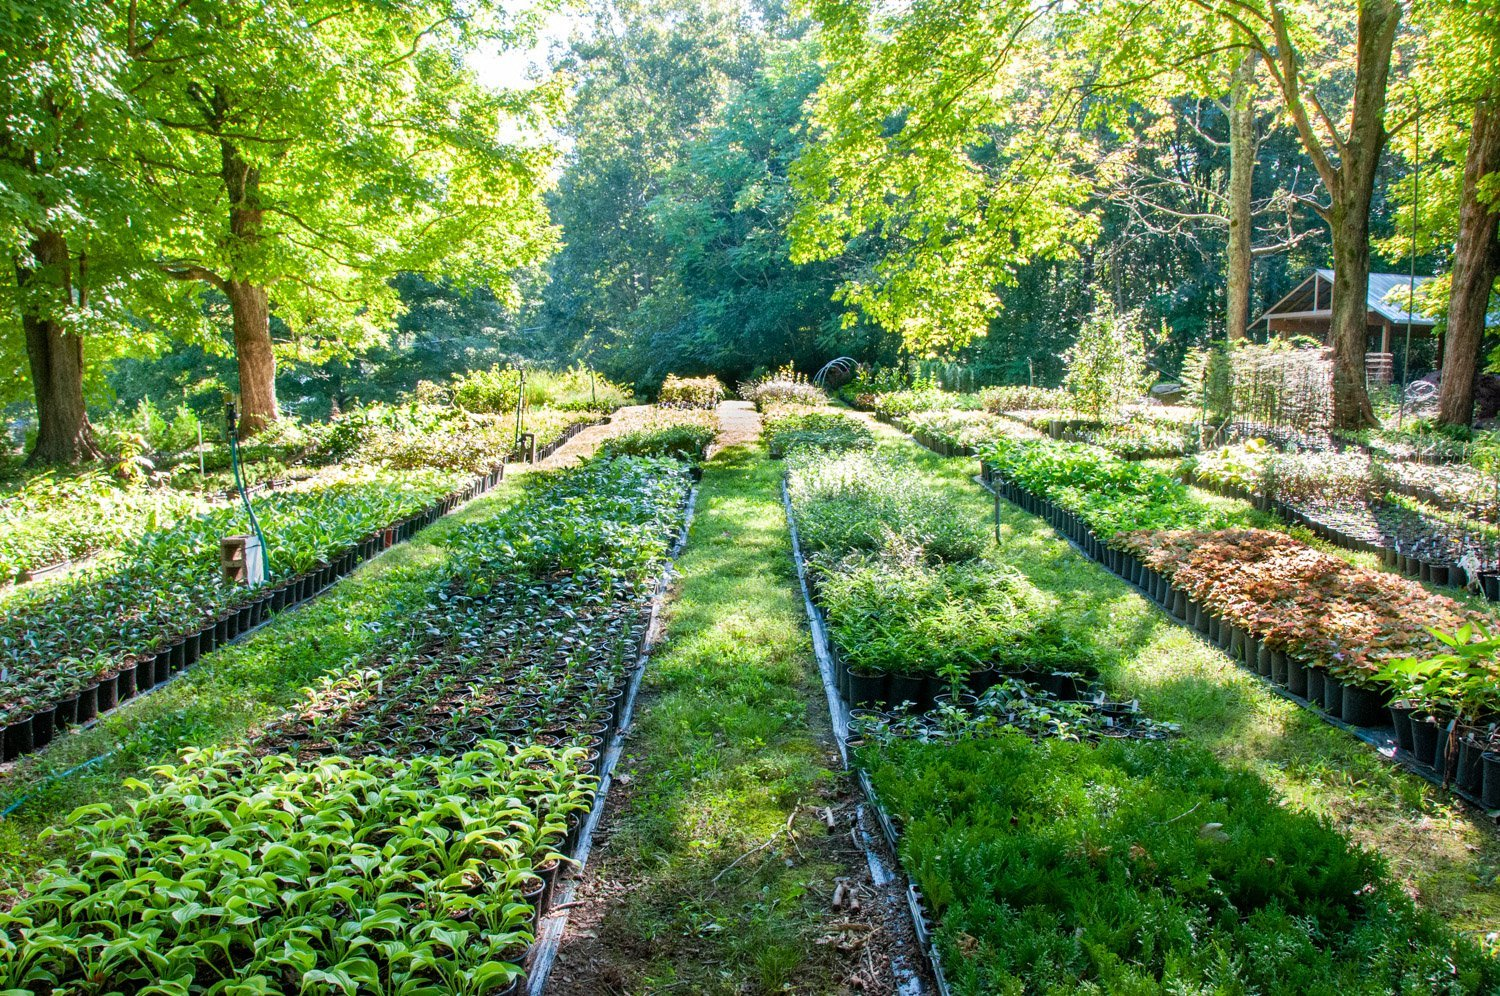 Shady nursery rows of young perennials with mature, vibrant green maple trees backlit by bright sunshine